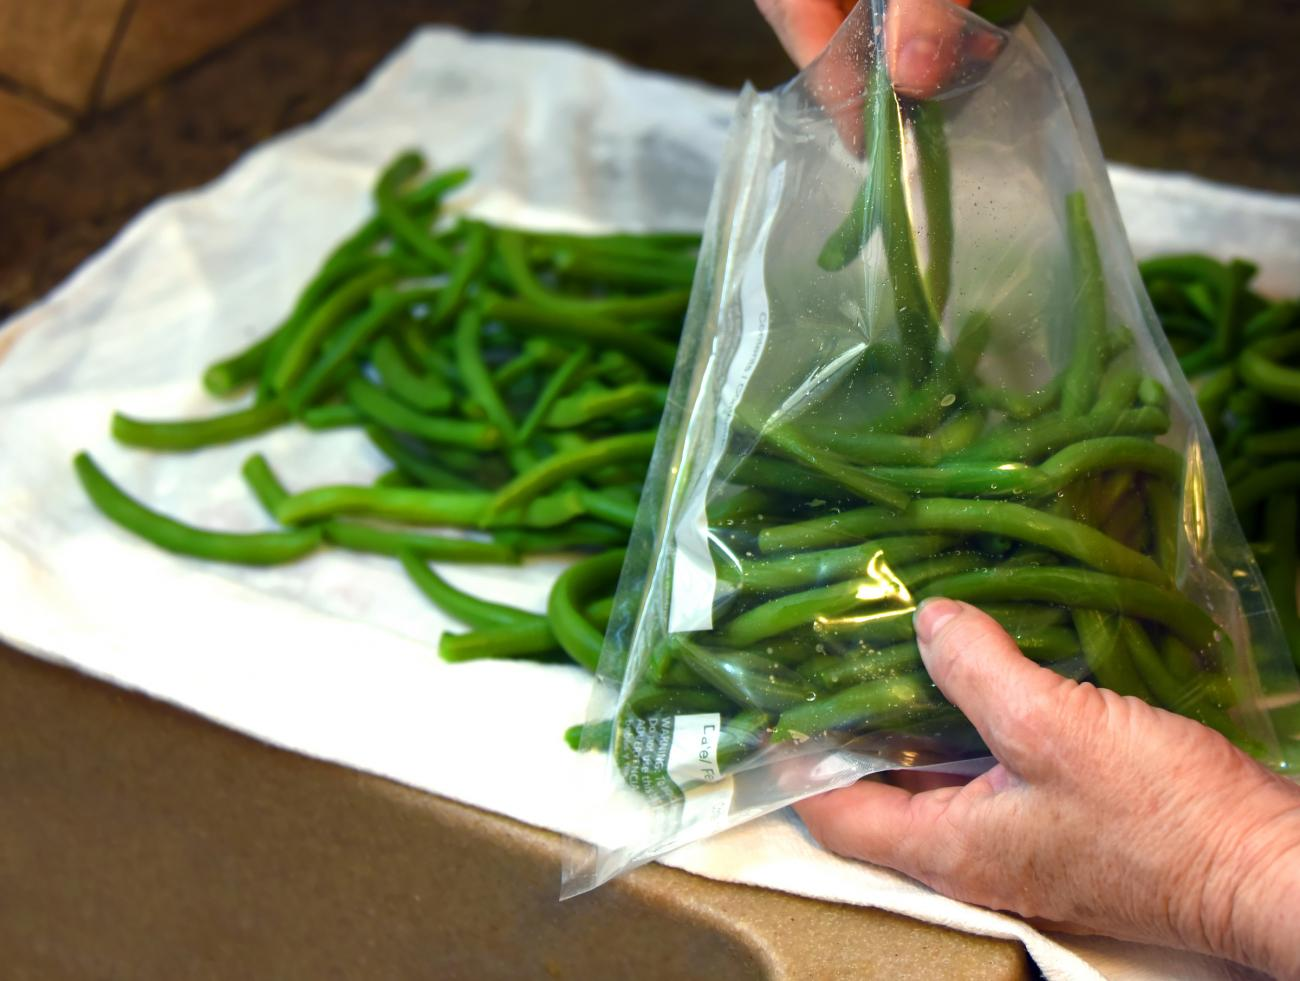 Green Beans Being Packed in Freezer Bags